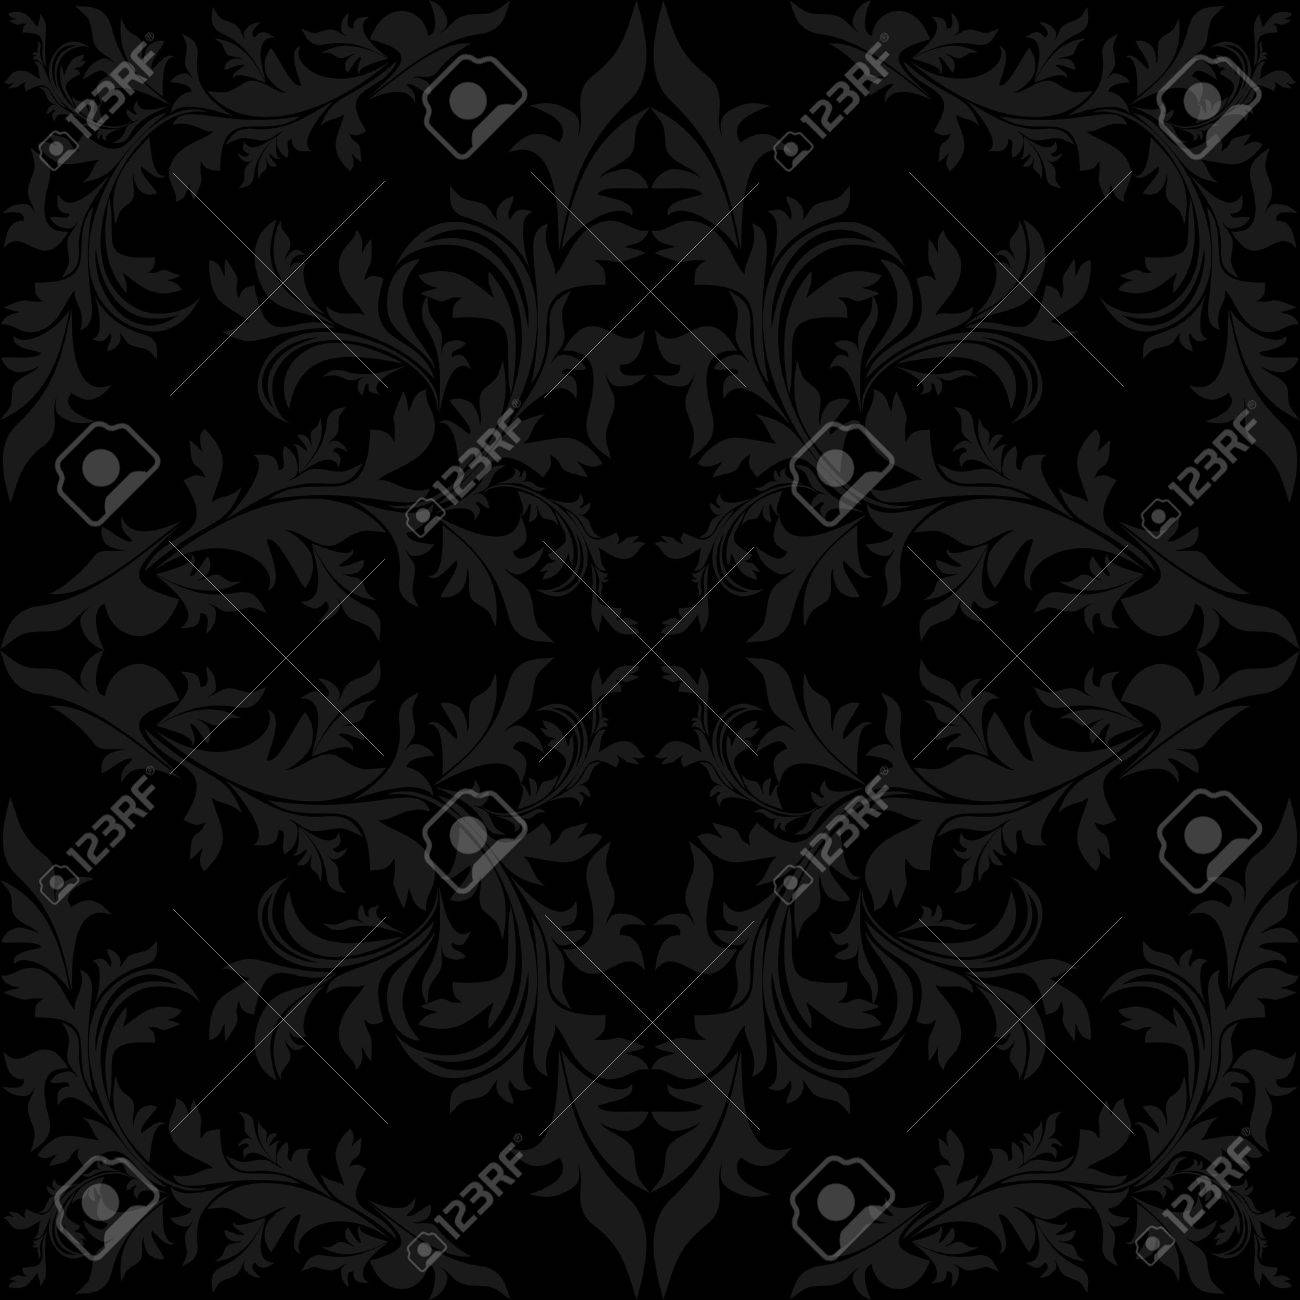 Seamless floral charcoal Pattern - 22956508